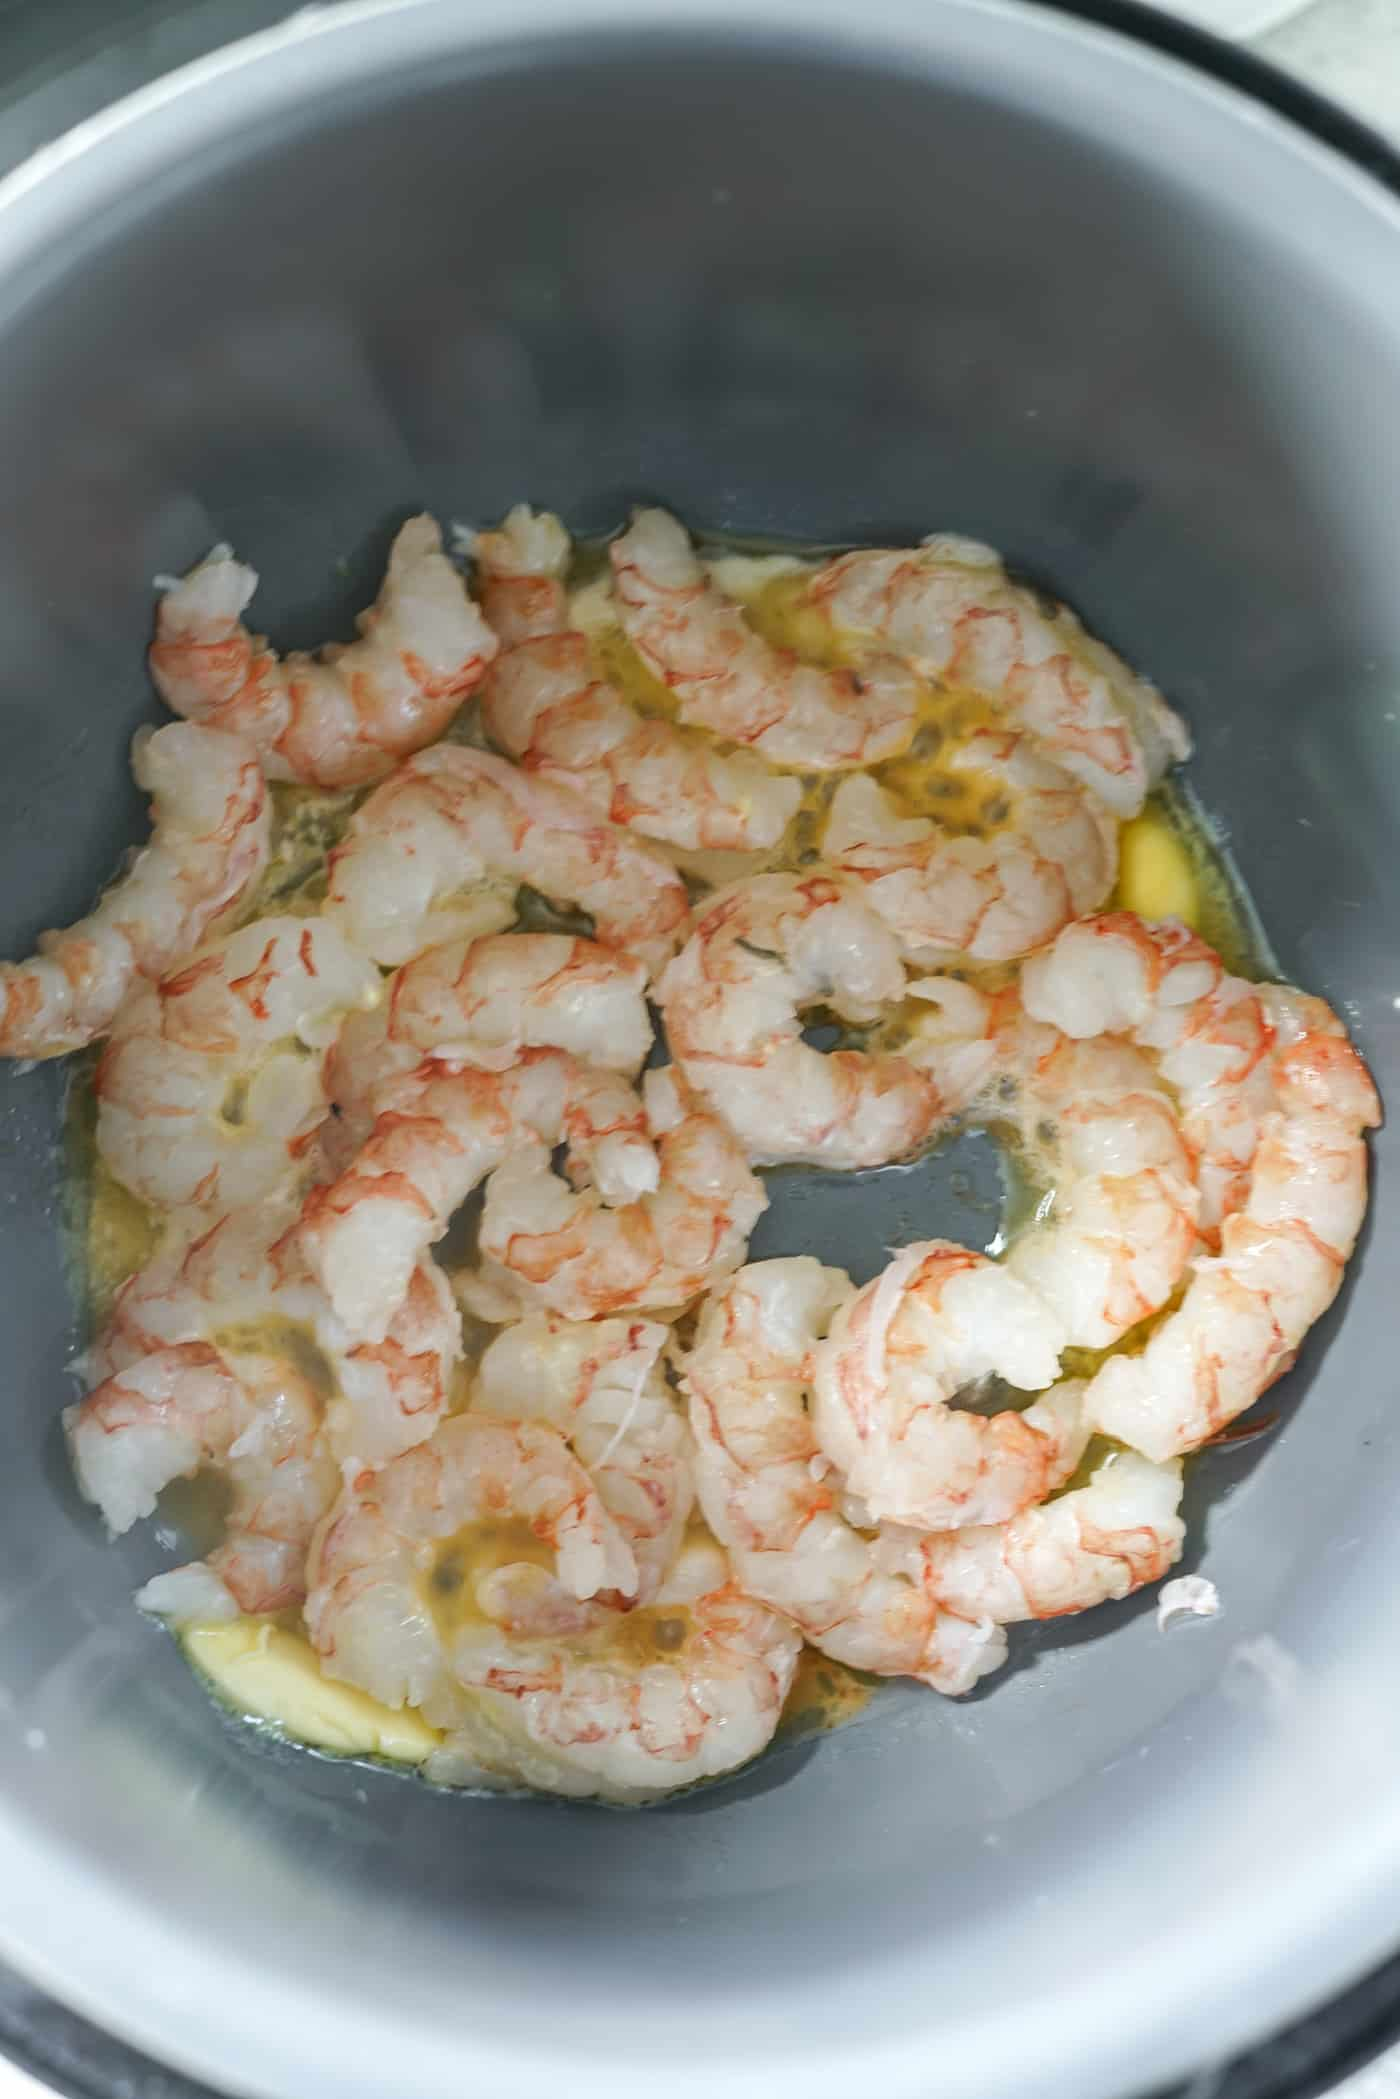 An Instant Pot filled with raw shrimp in butter and garlic